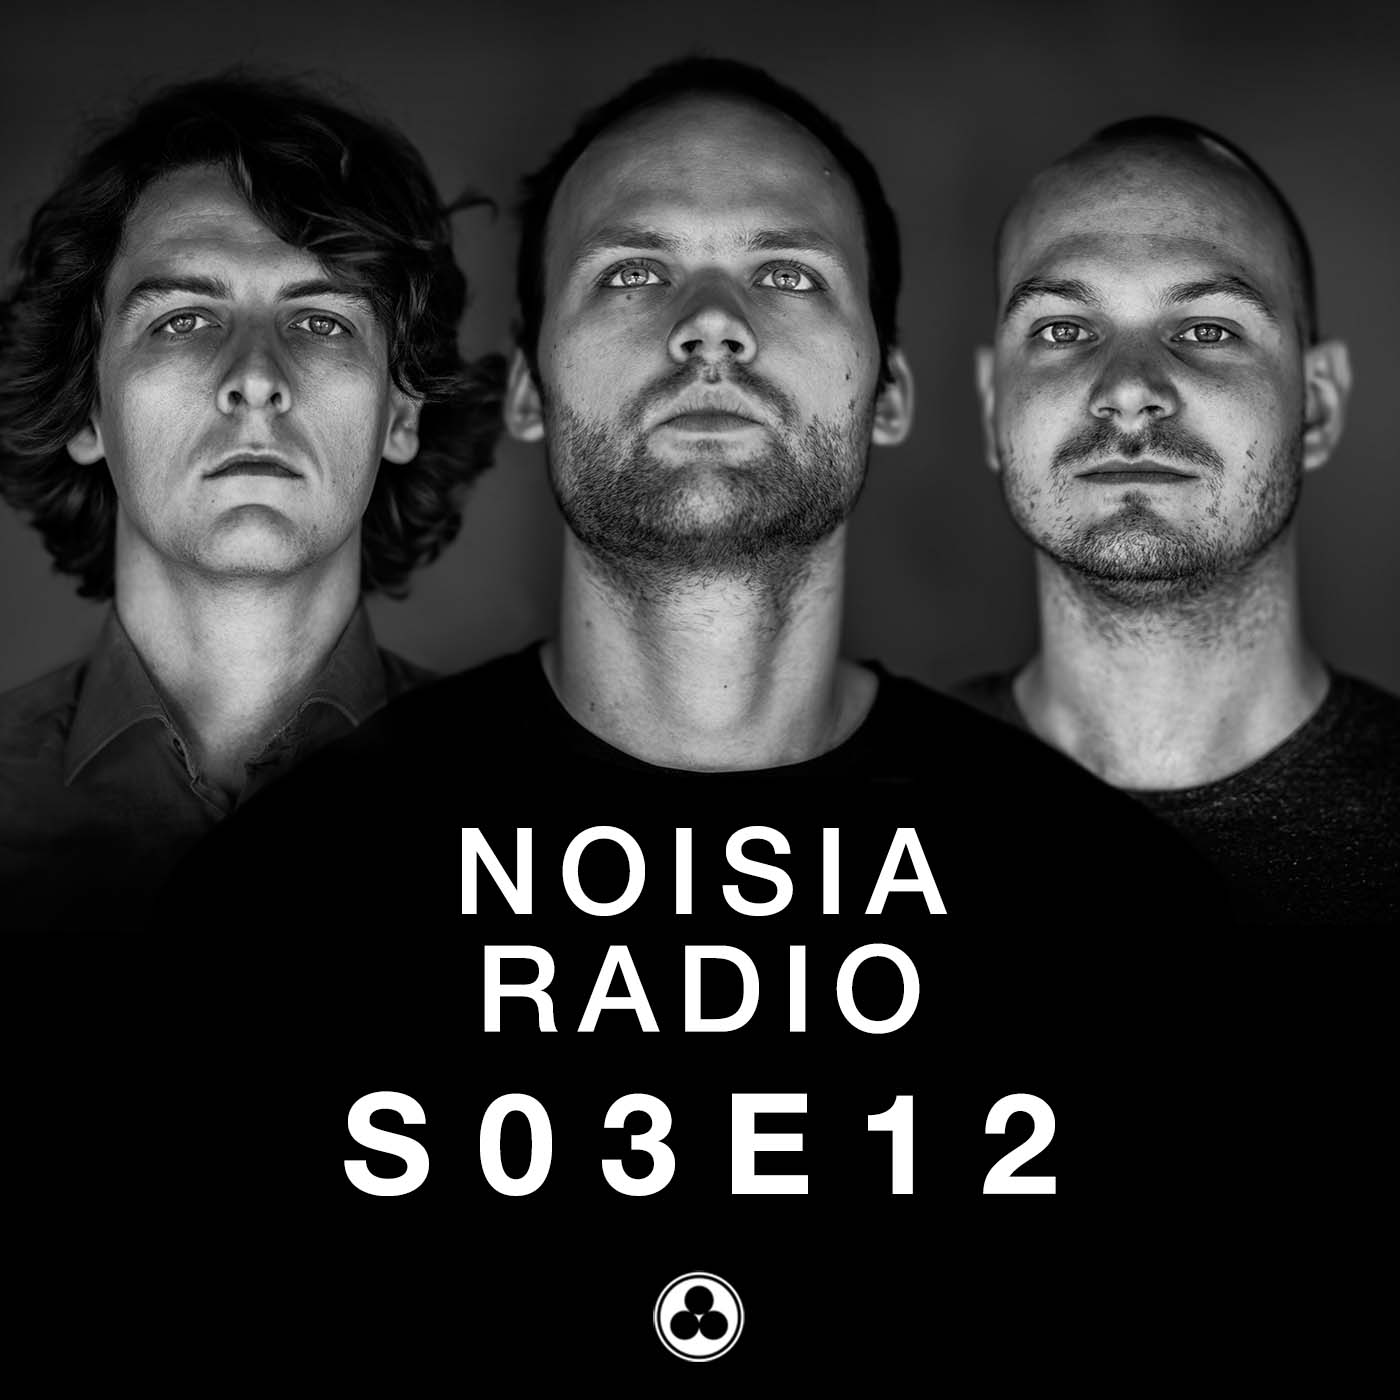 Noisia Radio S03E12